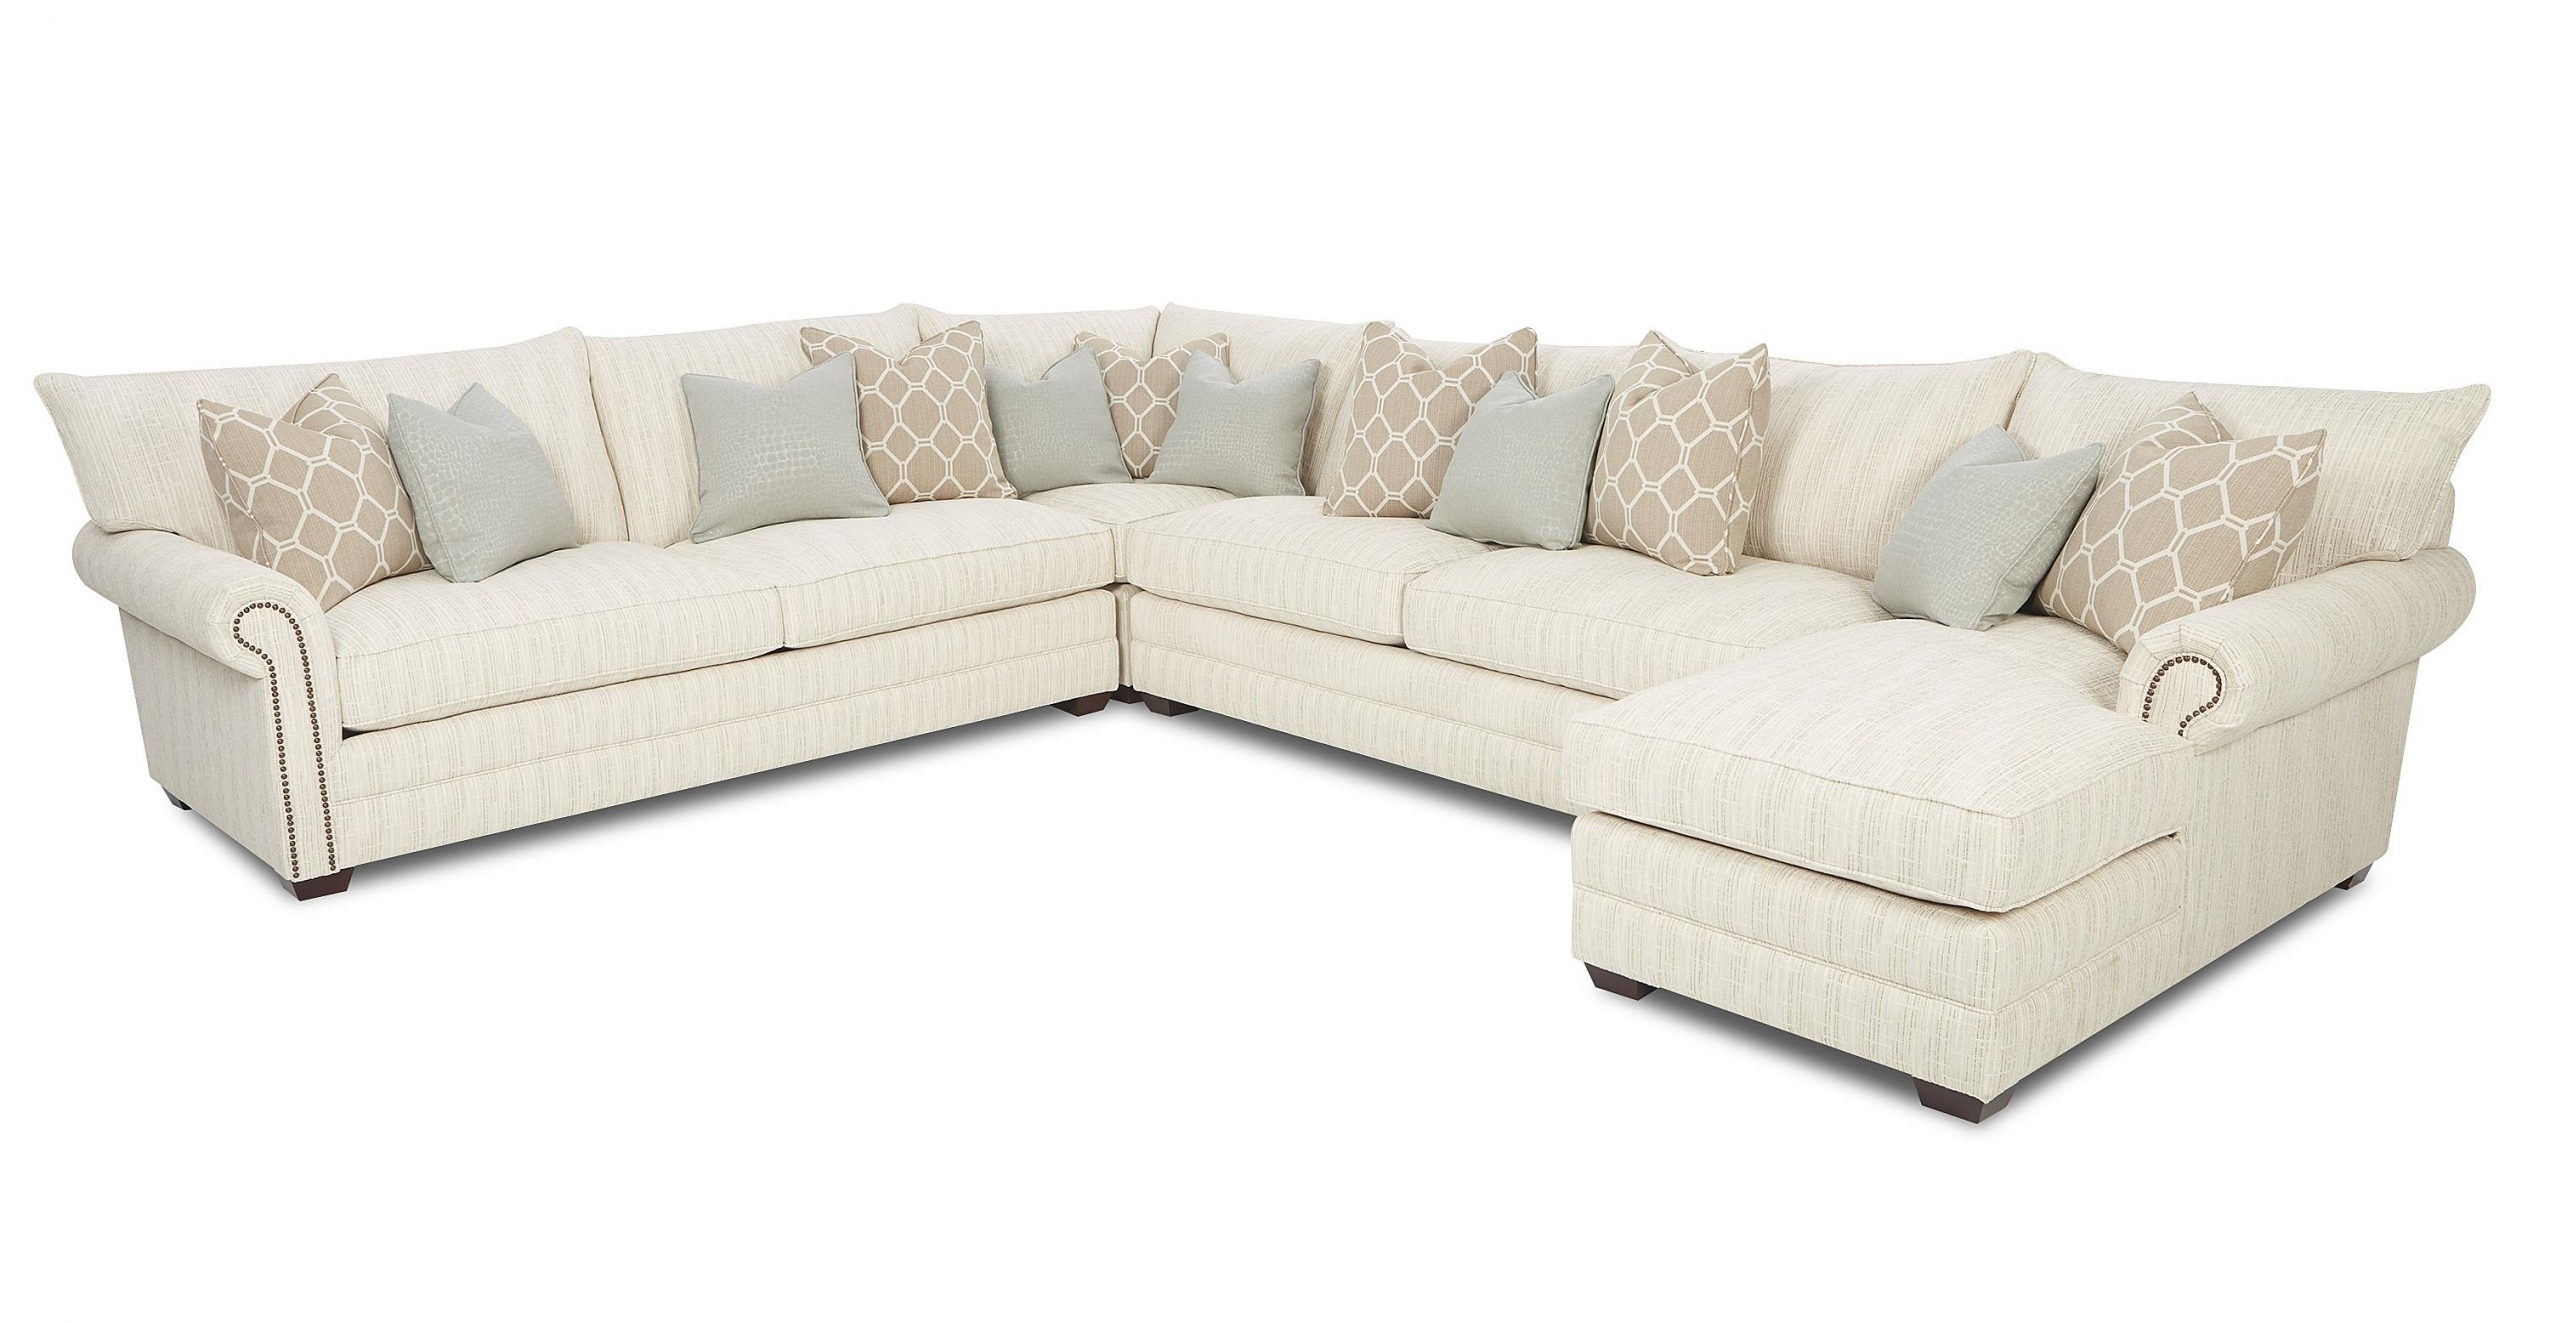 Best Of Nailhead Sectional Sofa Ideas – Intuisiblog Throughout Sectional Sofas With Nailheads (View 3 of 10)